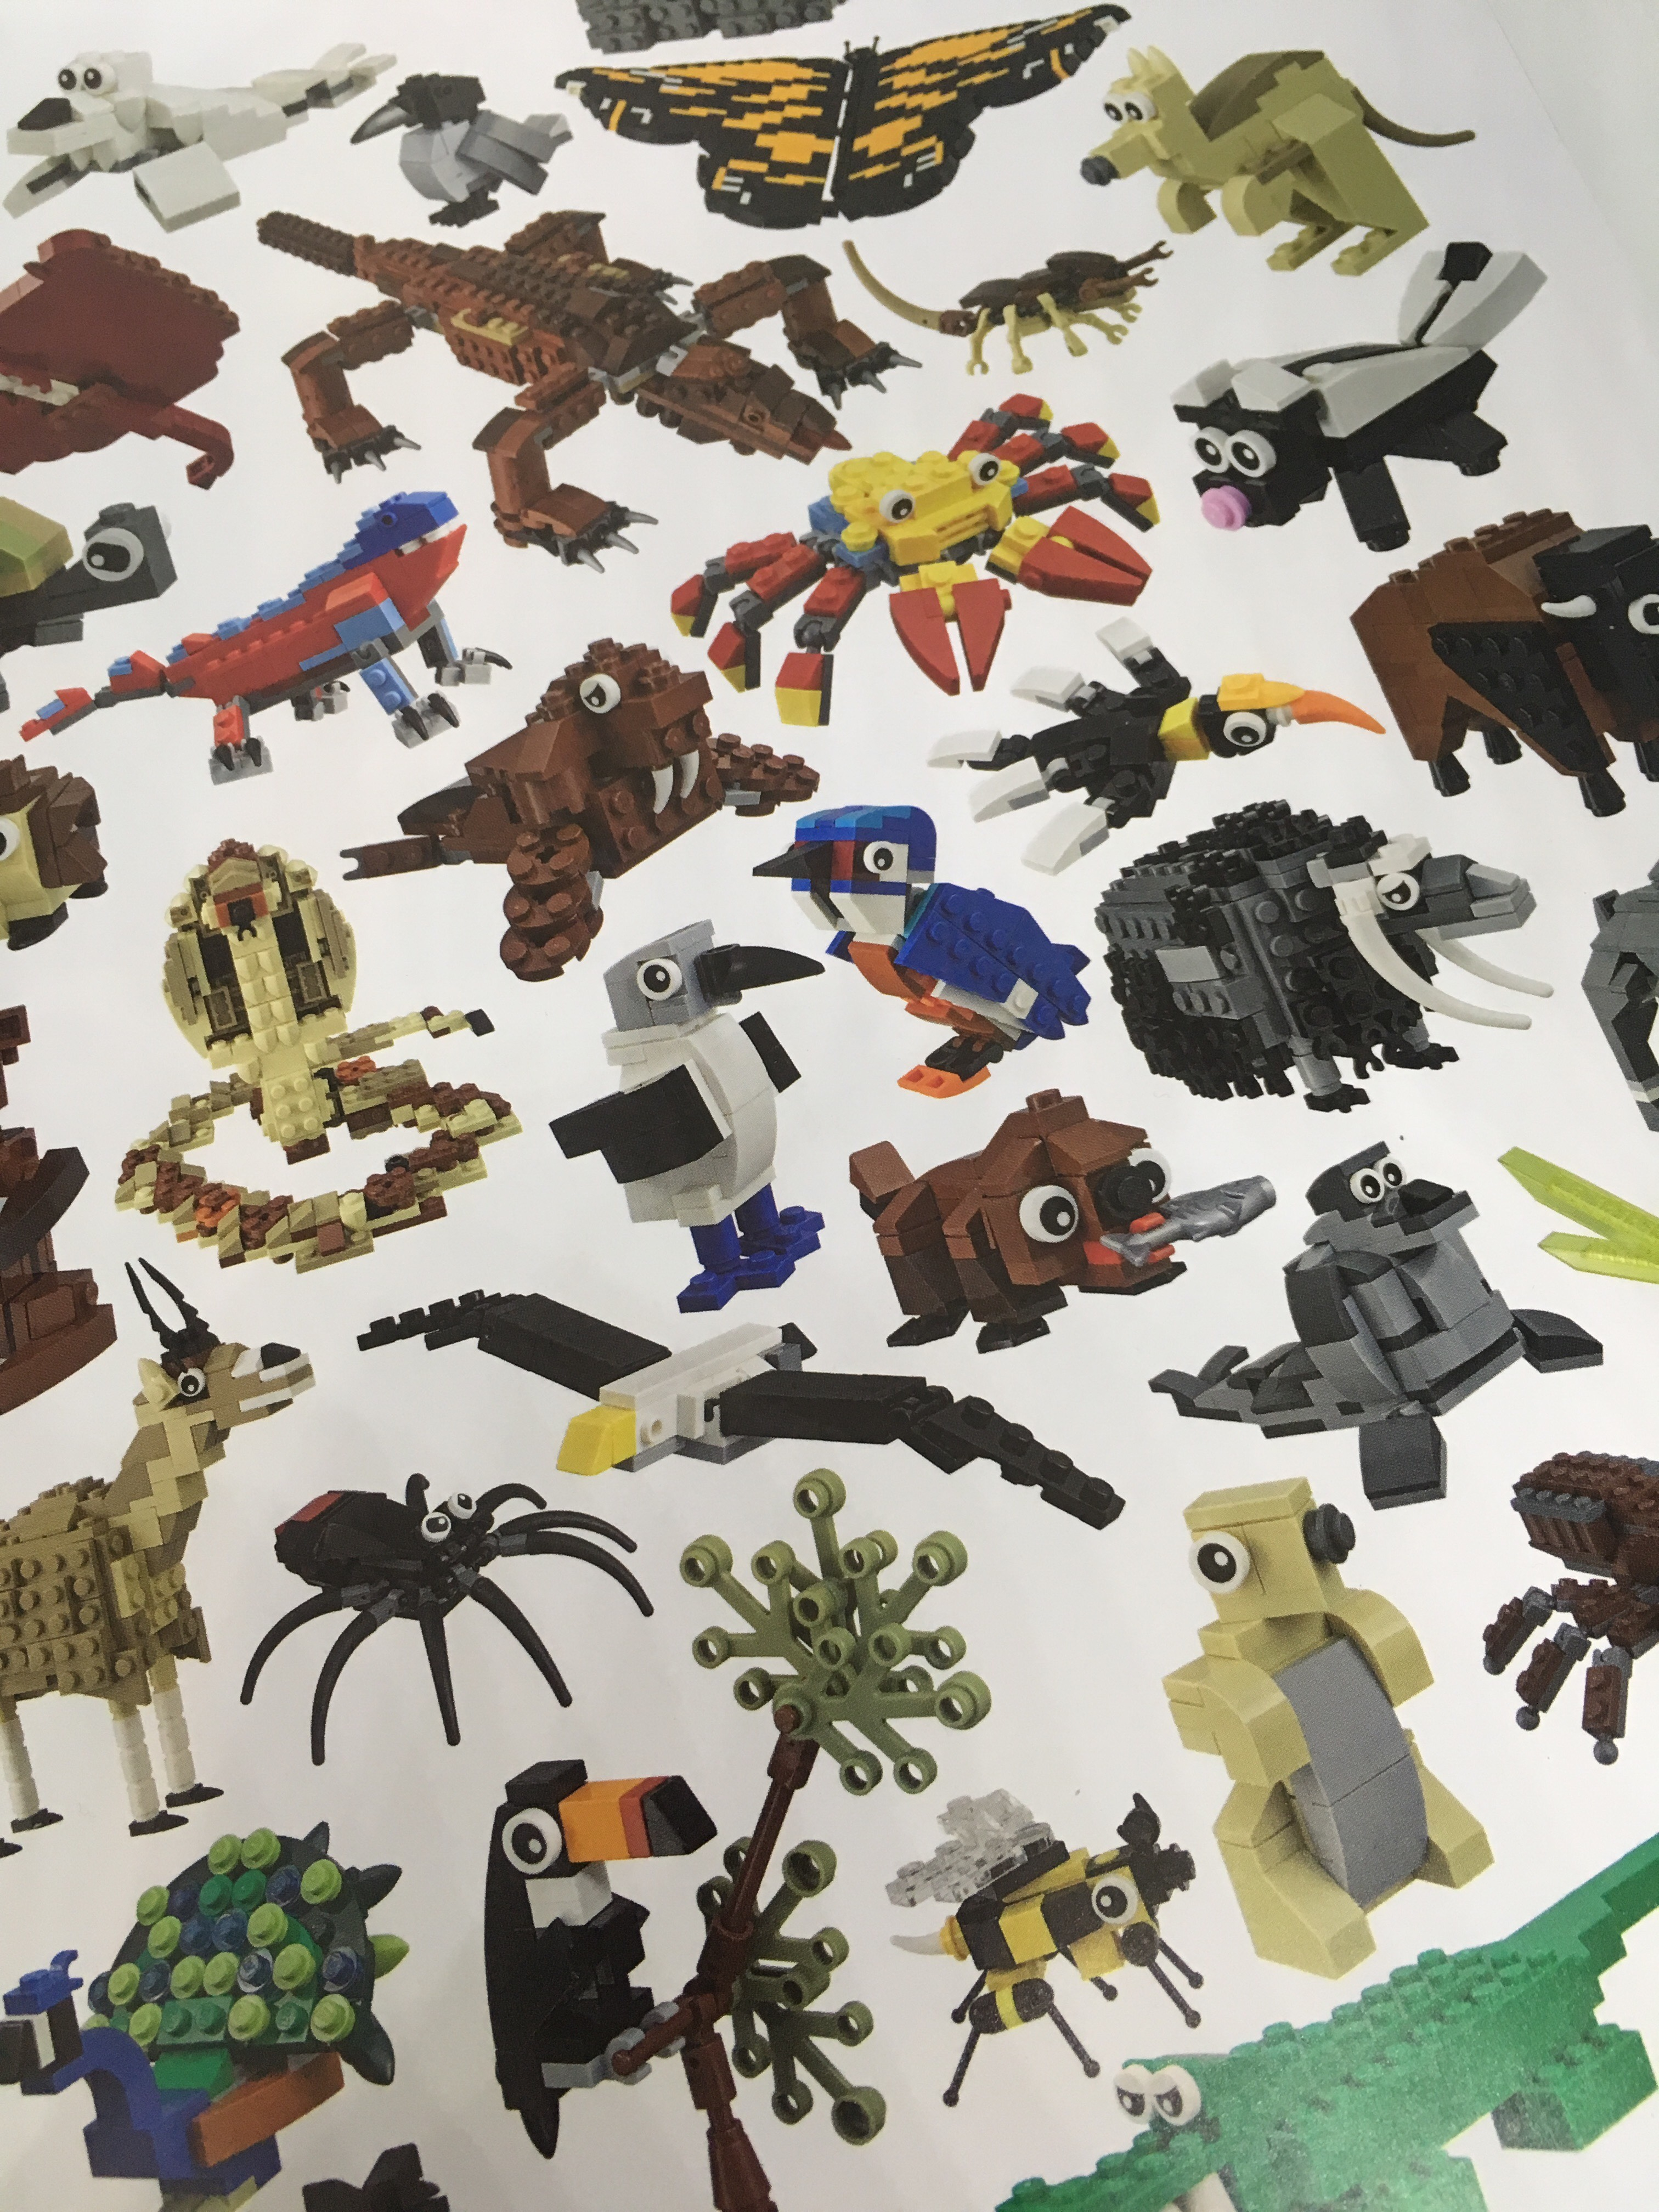 Brick built Lego animals